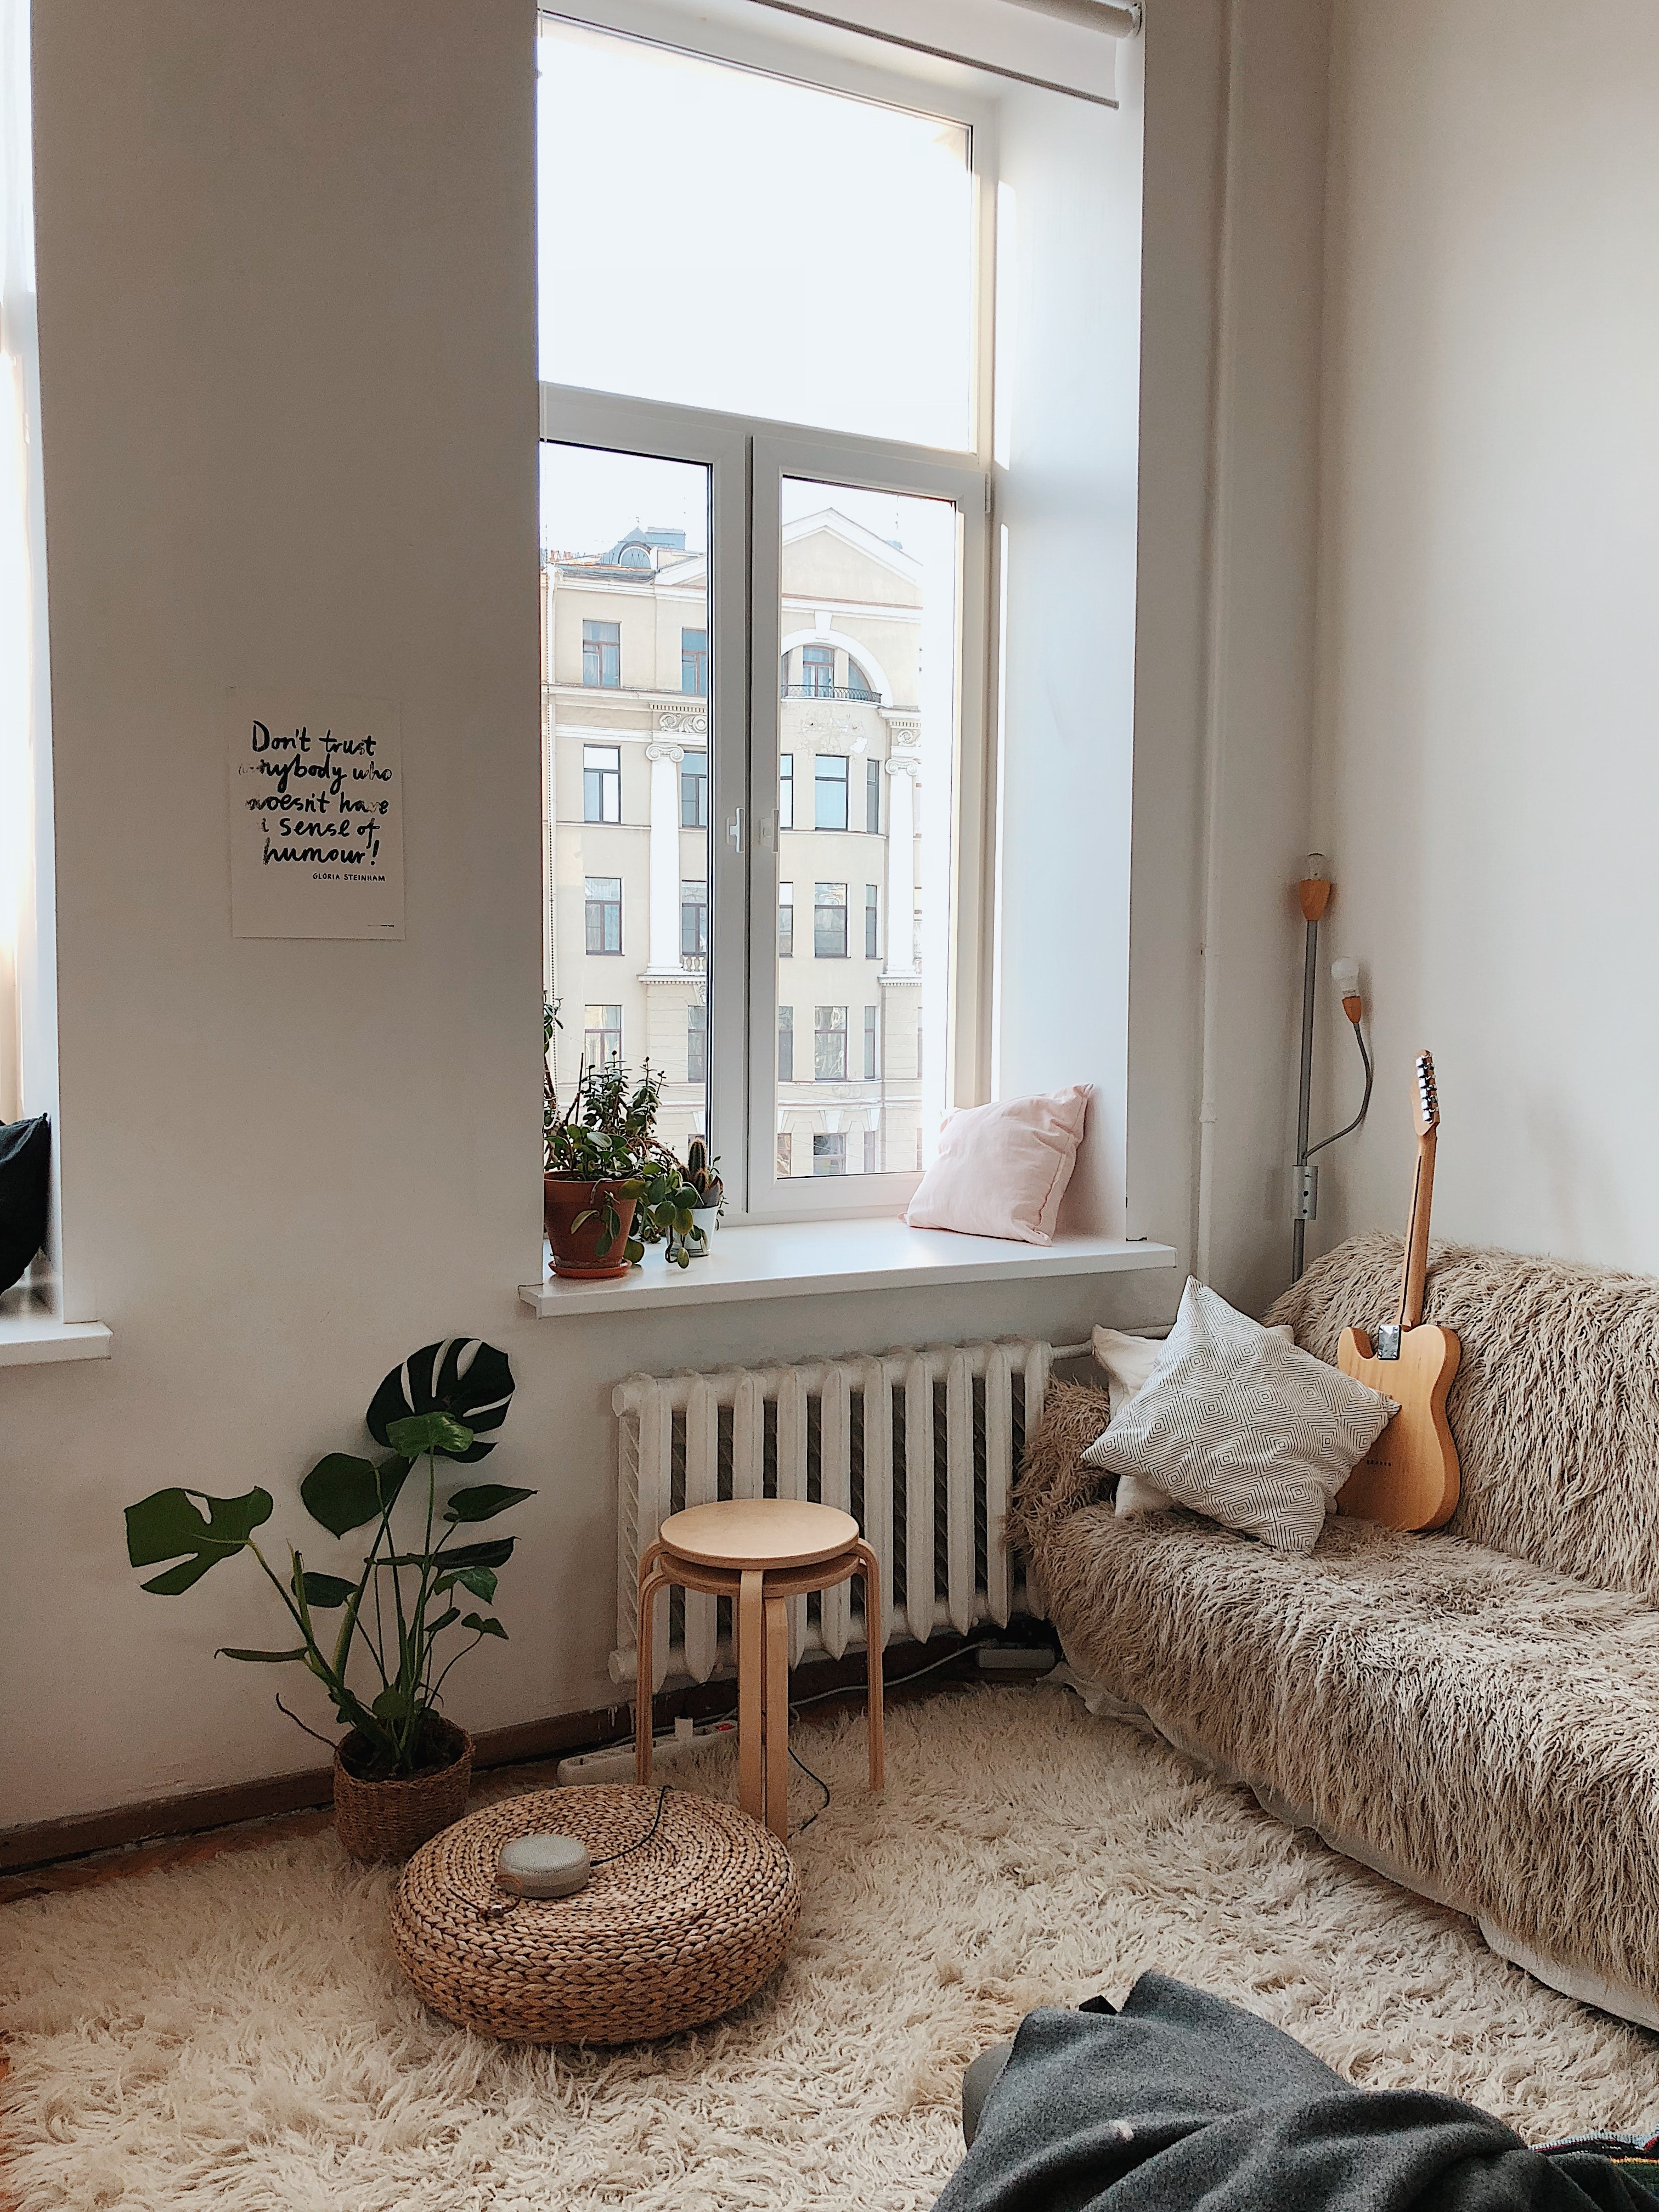 First apartment home with decorations